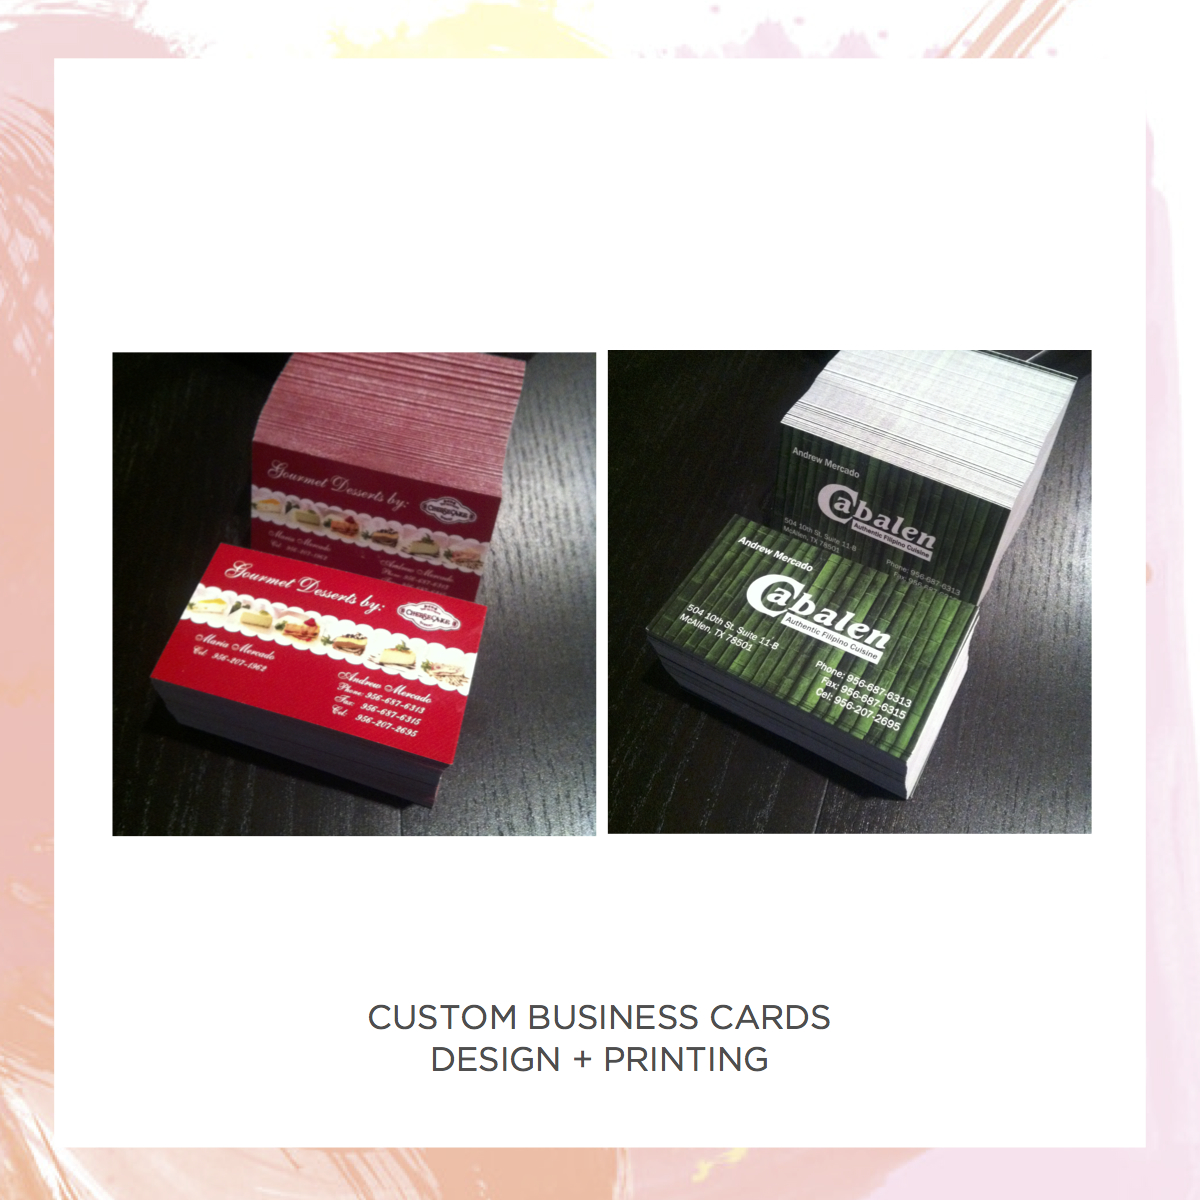 Custom business cards elei ink and paper online store powered by custom business cards thumbnail 2 colourmoves